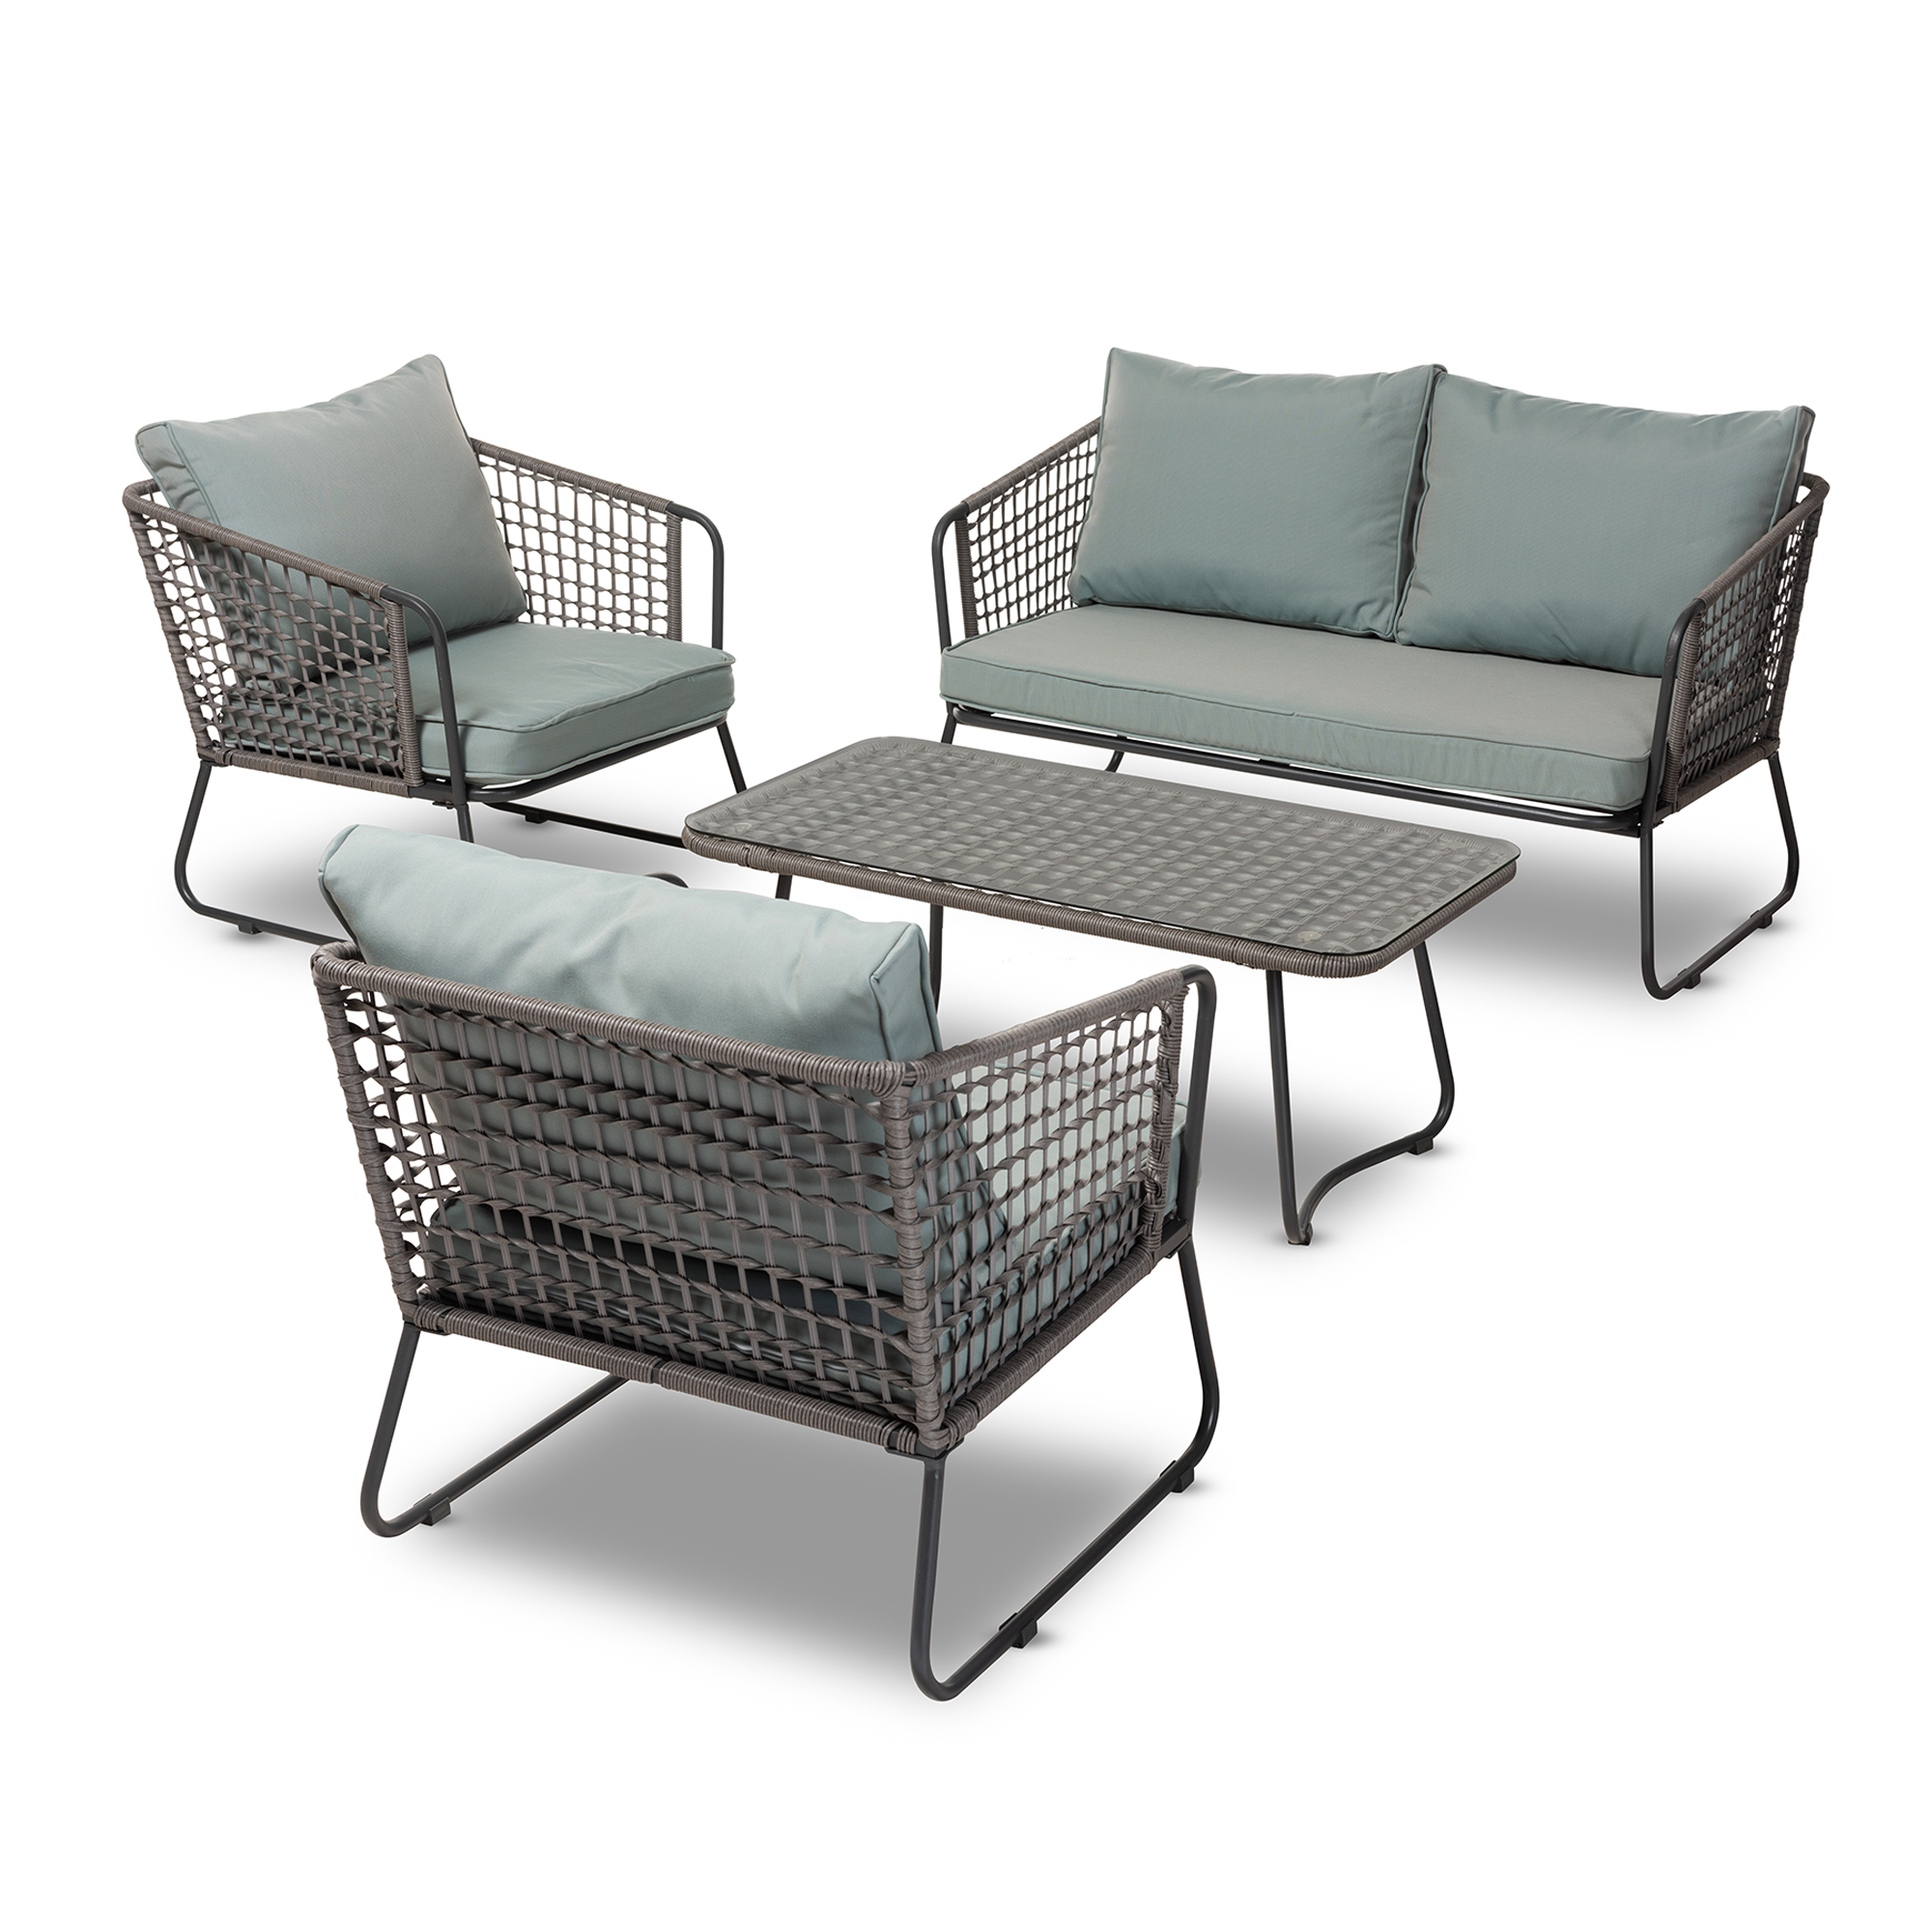 Baxton Studio Emil Modern And Contemporary Sky Blue Fabric Upholstered And  Grey Rattan 4 Piece Outdoor Patio Lounge Set